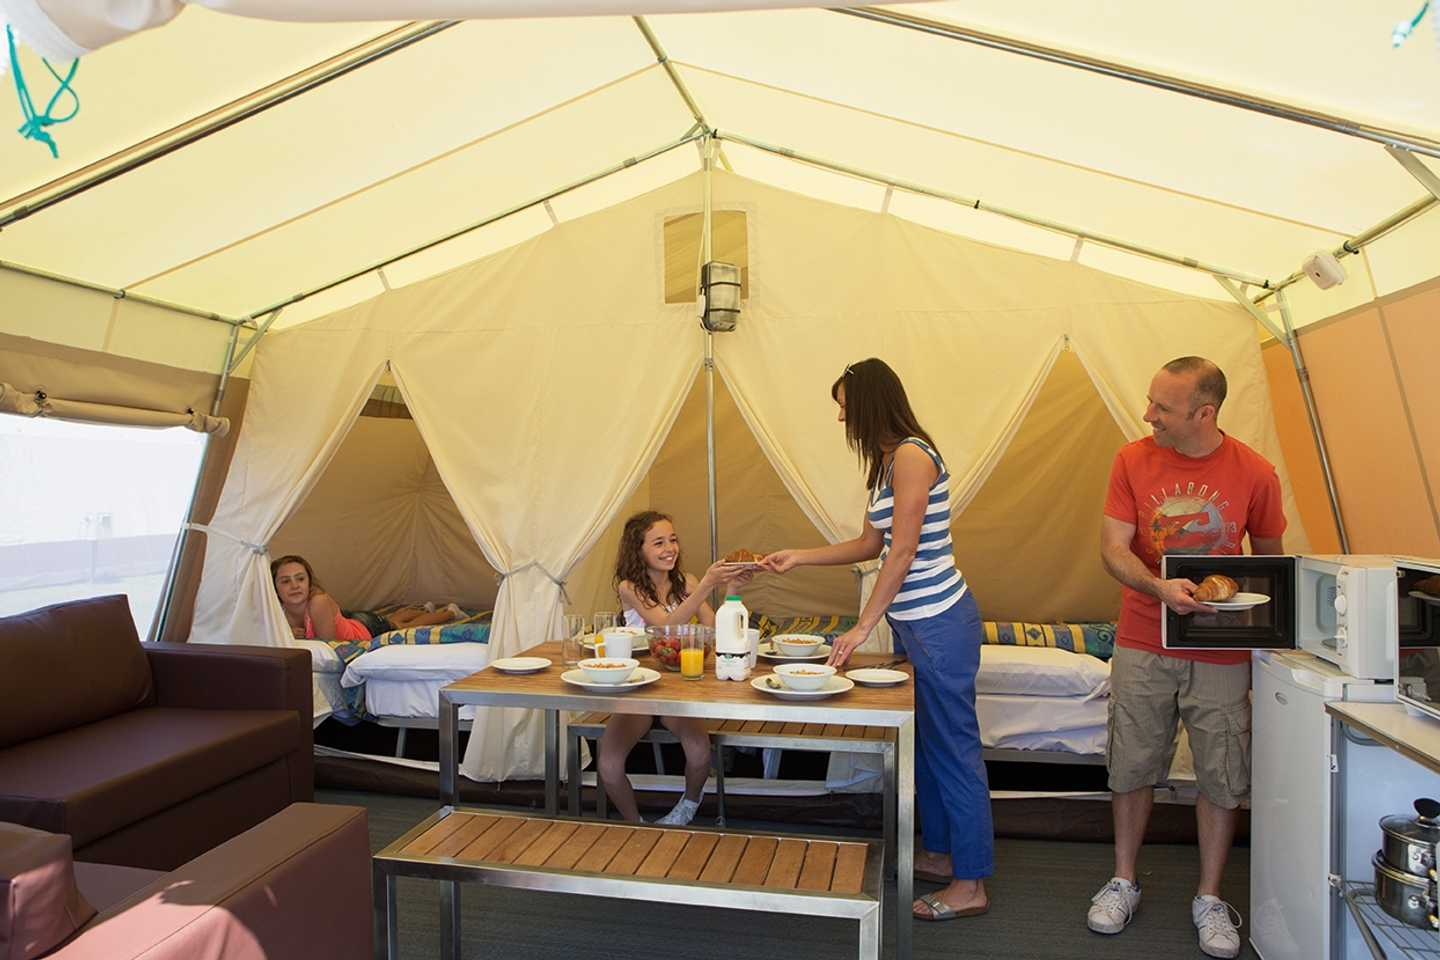 A family sitting down to eat breakfast in a Supertent